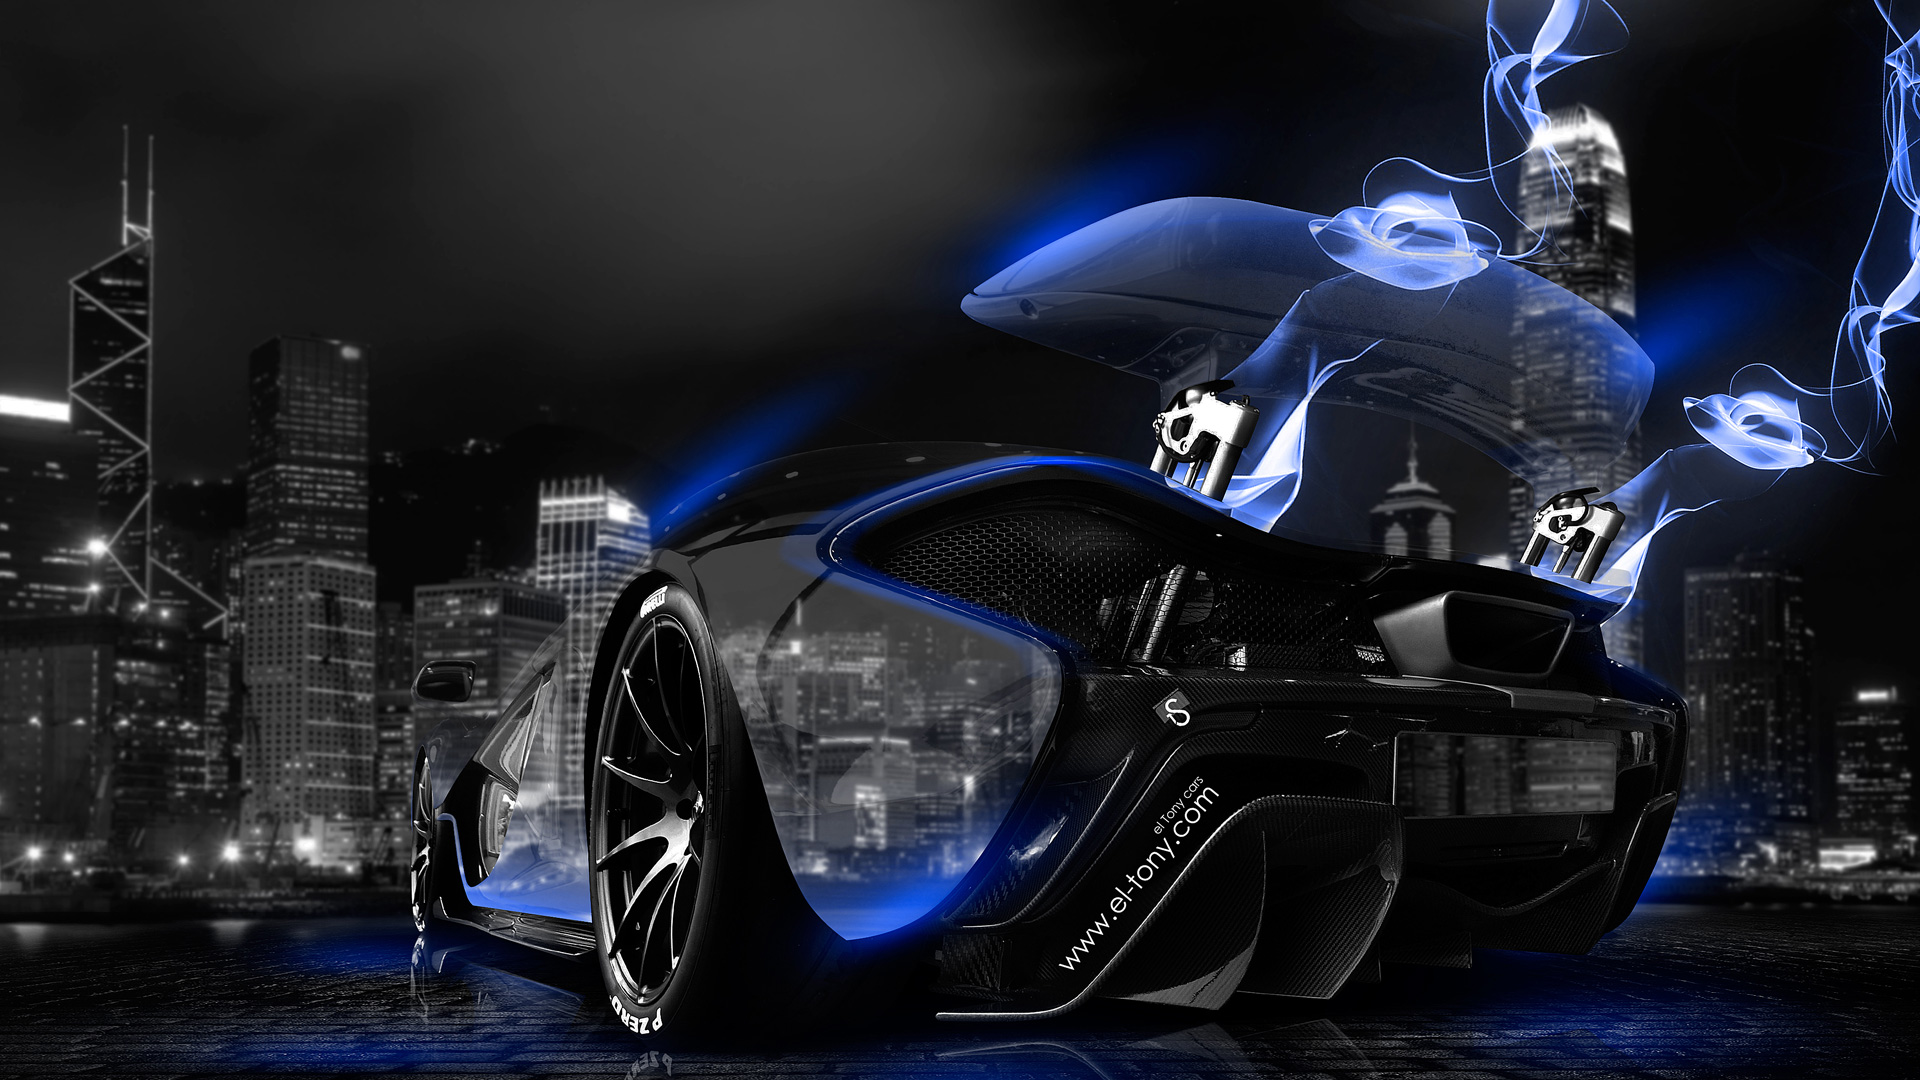 McLaren P1 Blue Neon Energy Crystal City Car 2014 HD Wallpapers ...